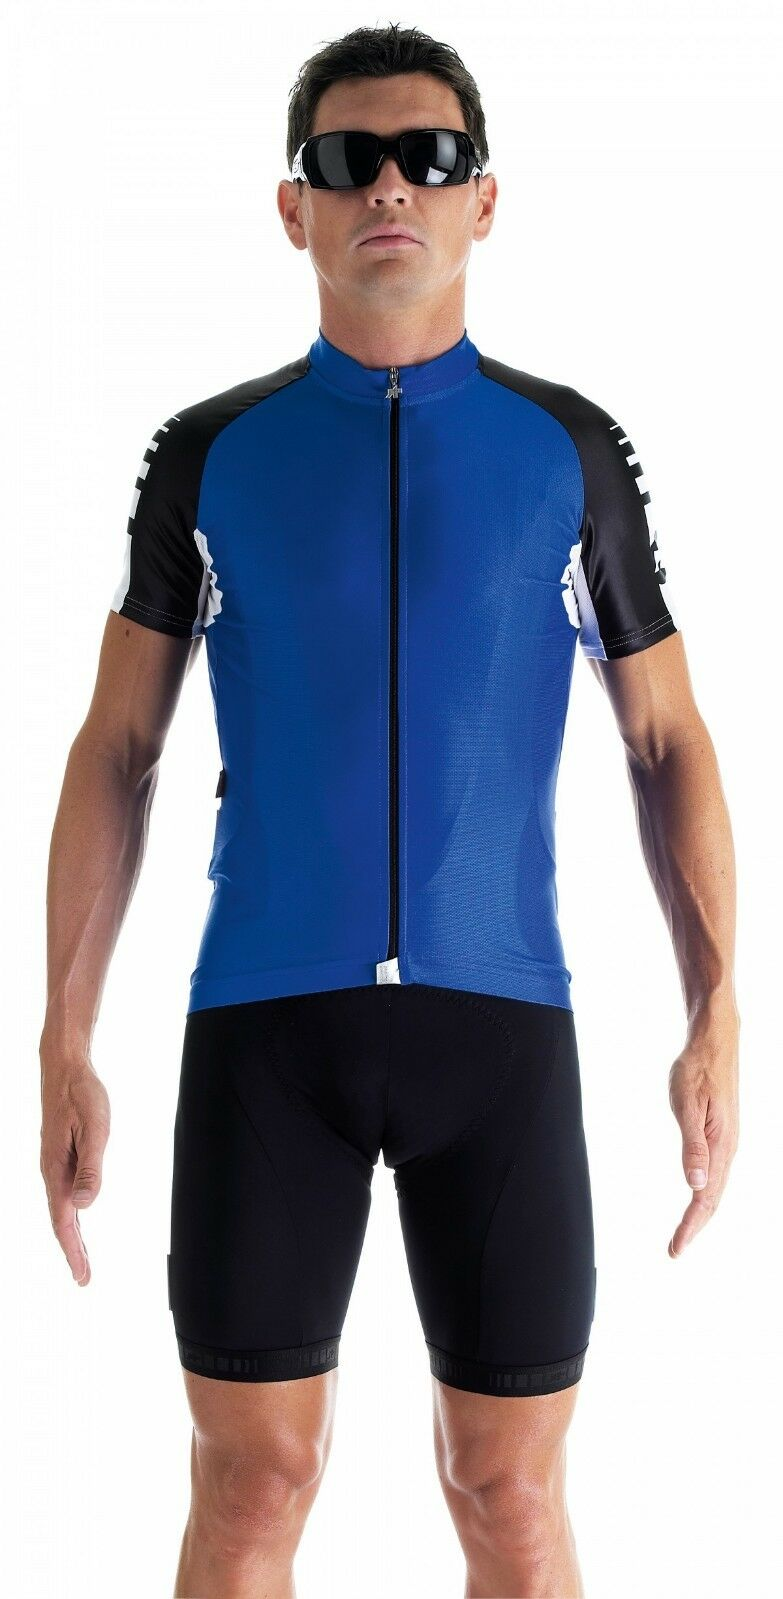 NEW Assos SS.UNO Men's Bike Cycling Short Sleeve Jersey XS Extra Small Col  blu